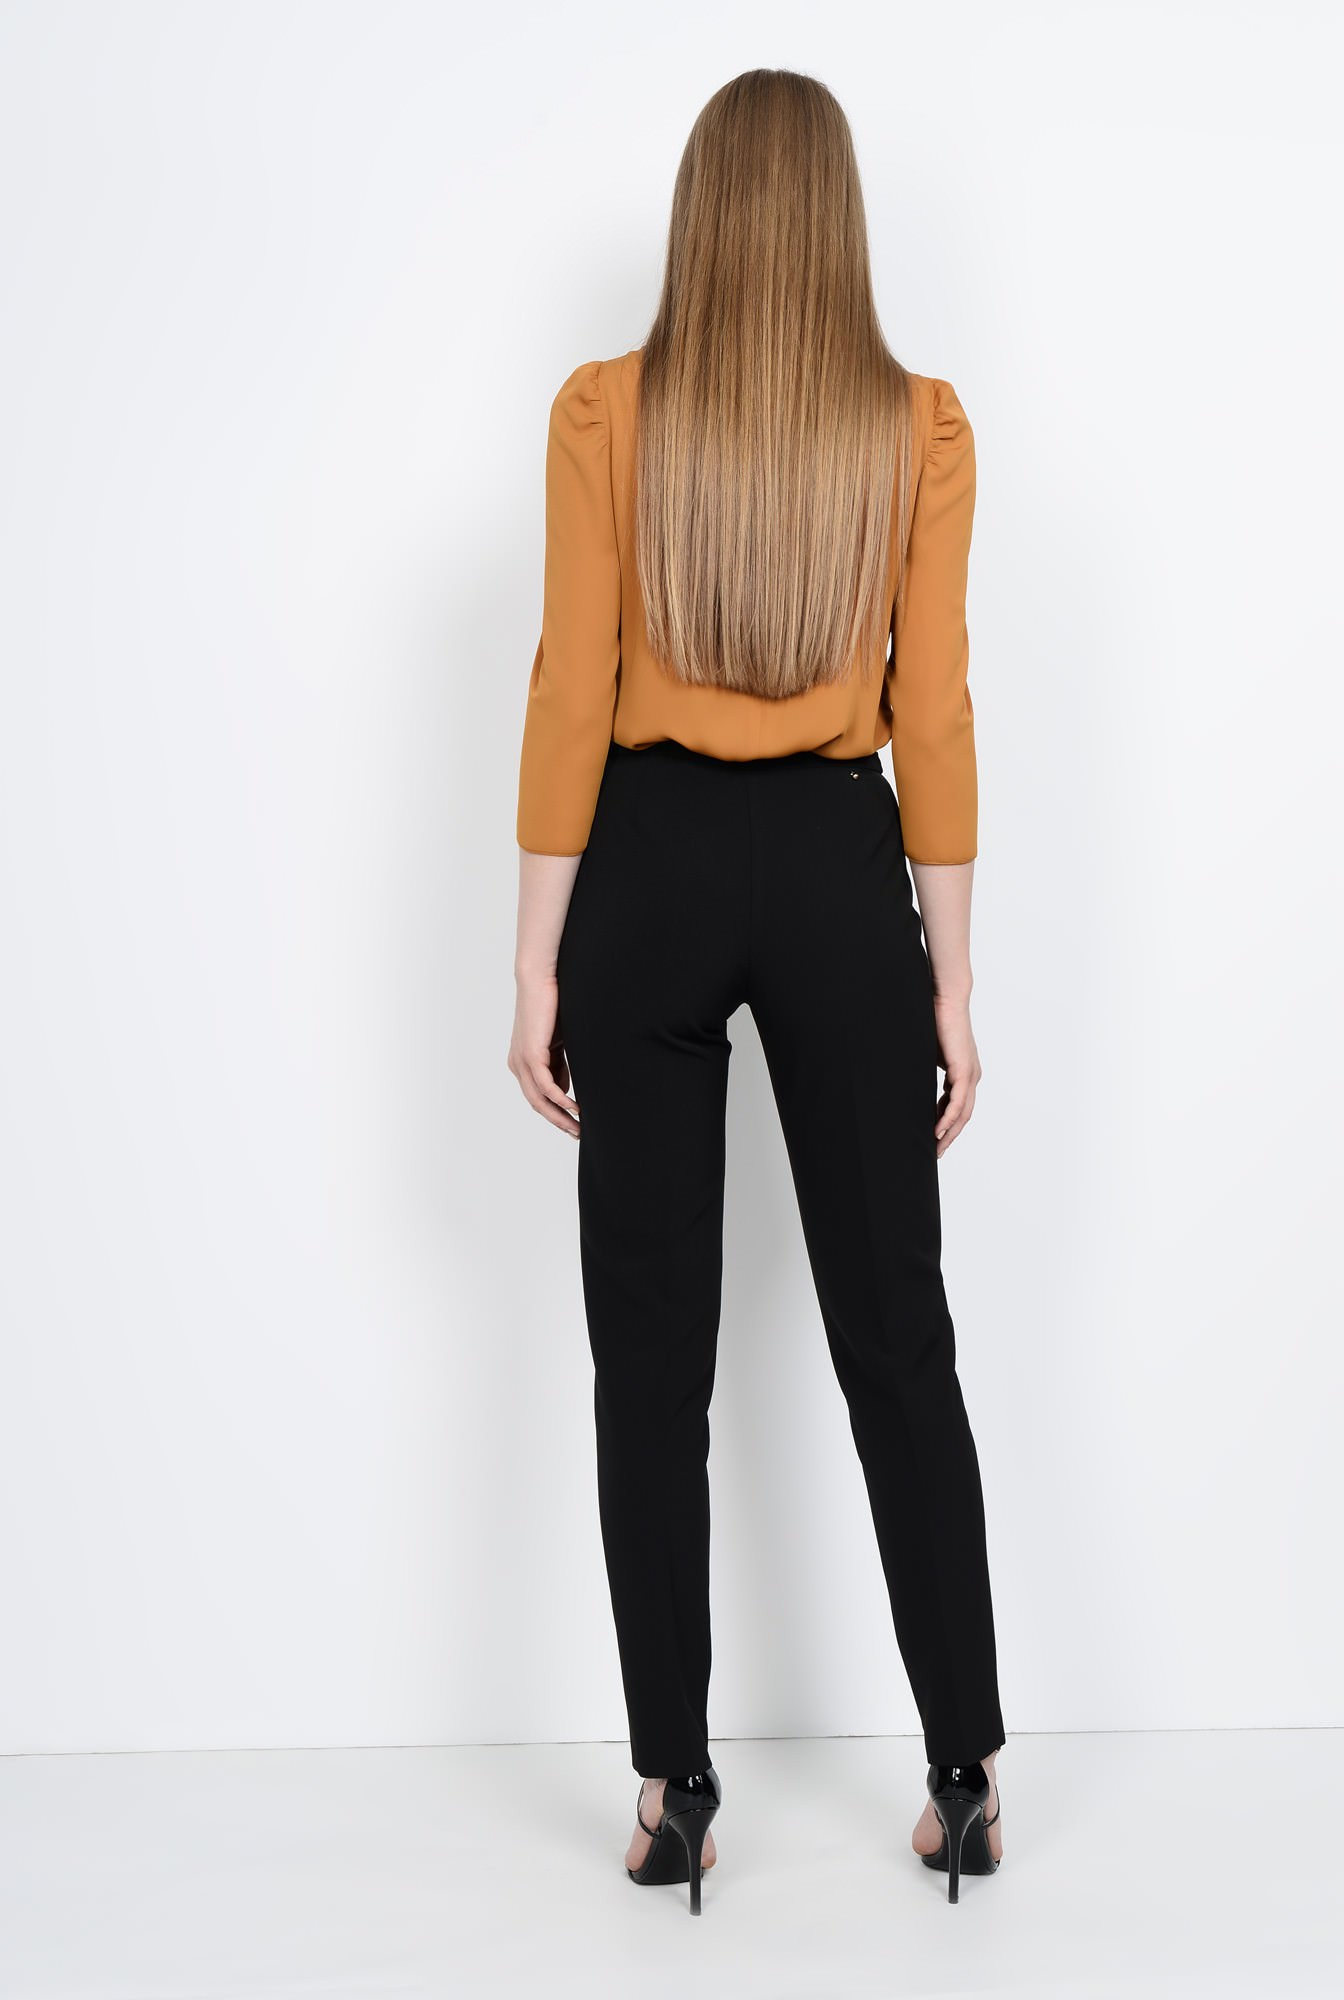 1 - PANTALON OFFICE PT 103-NEGRU